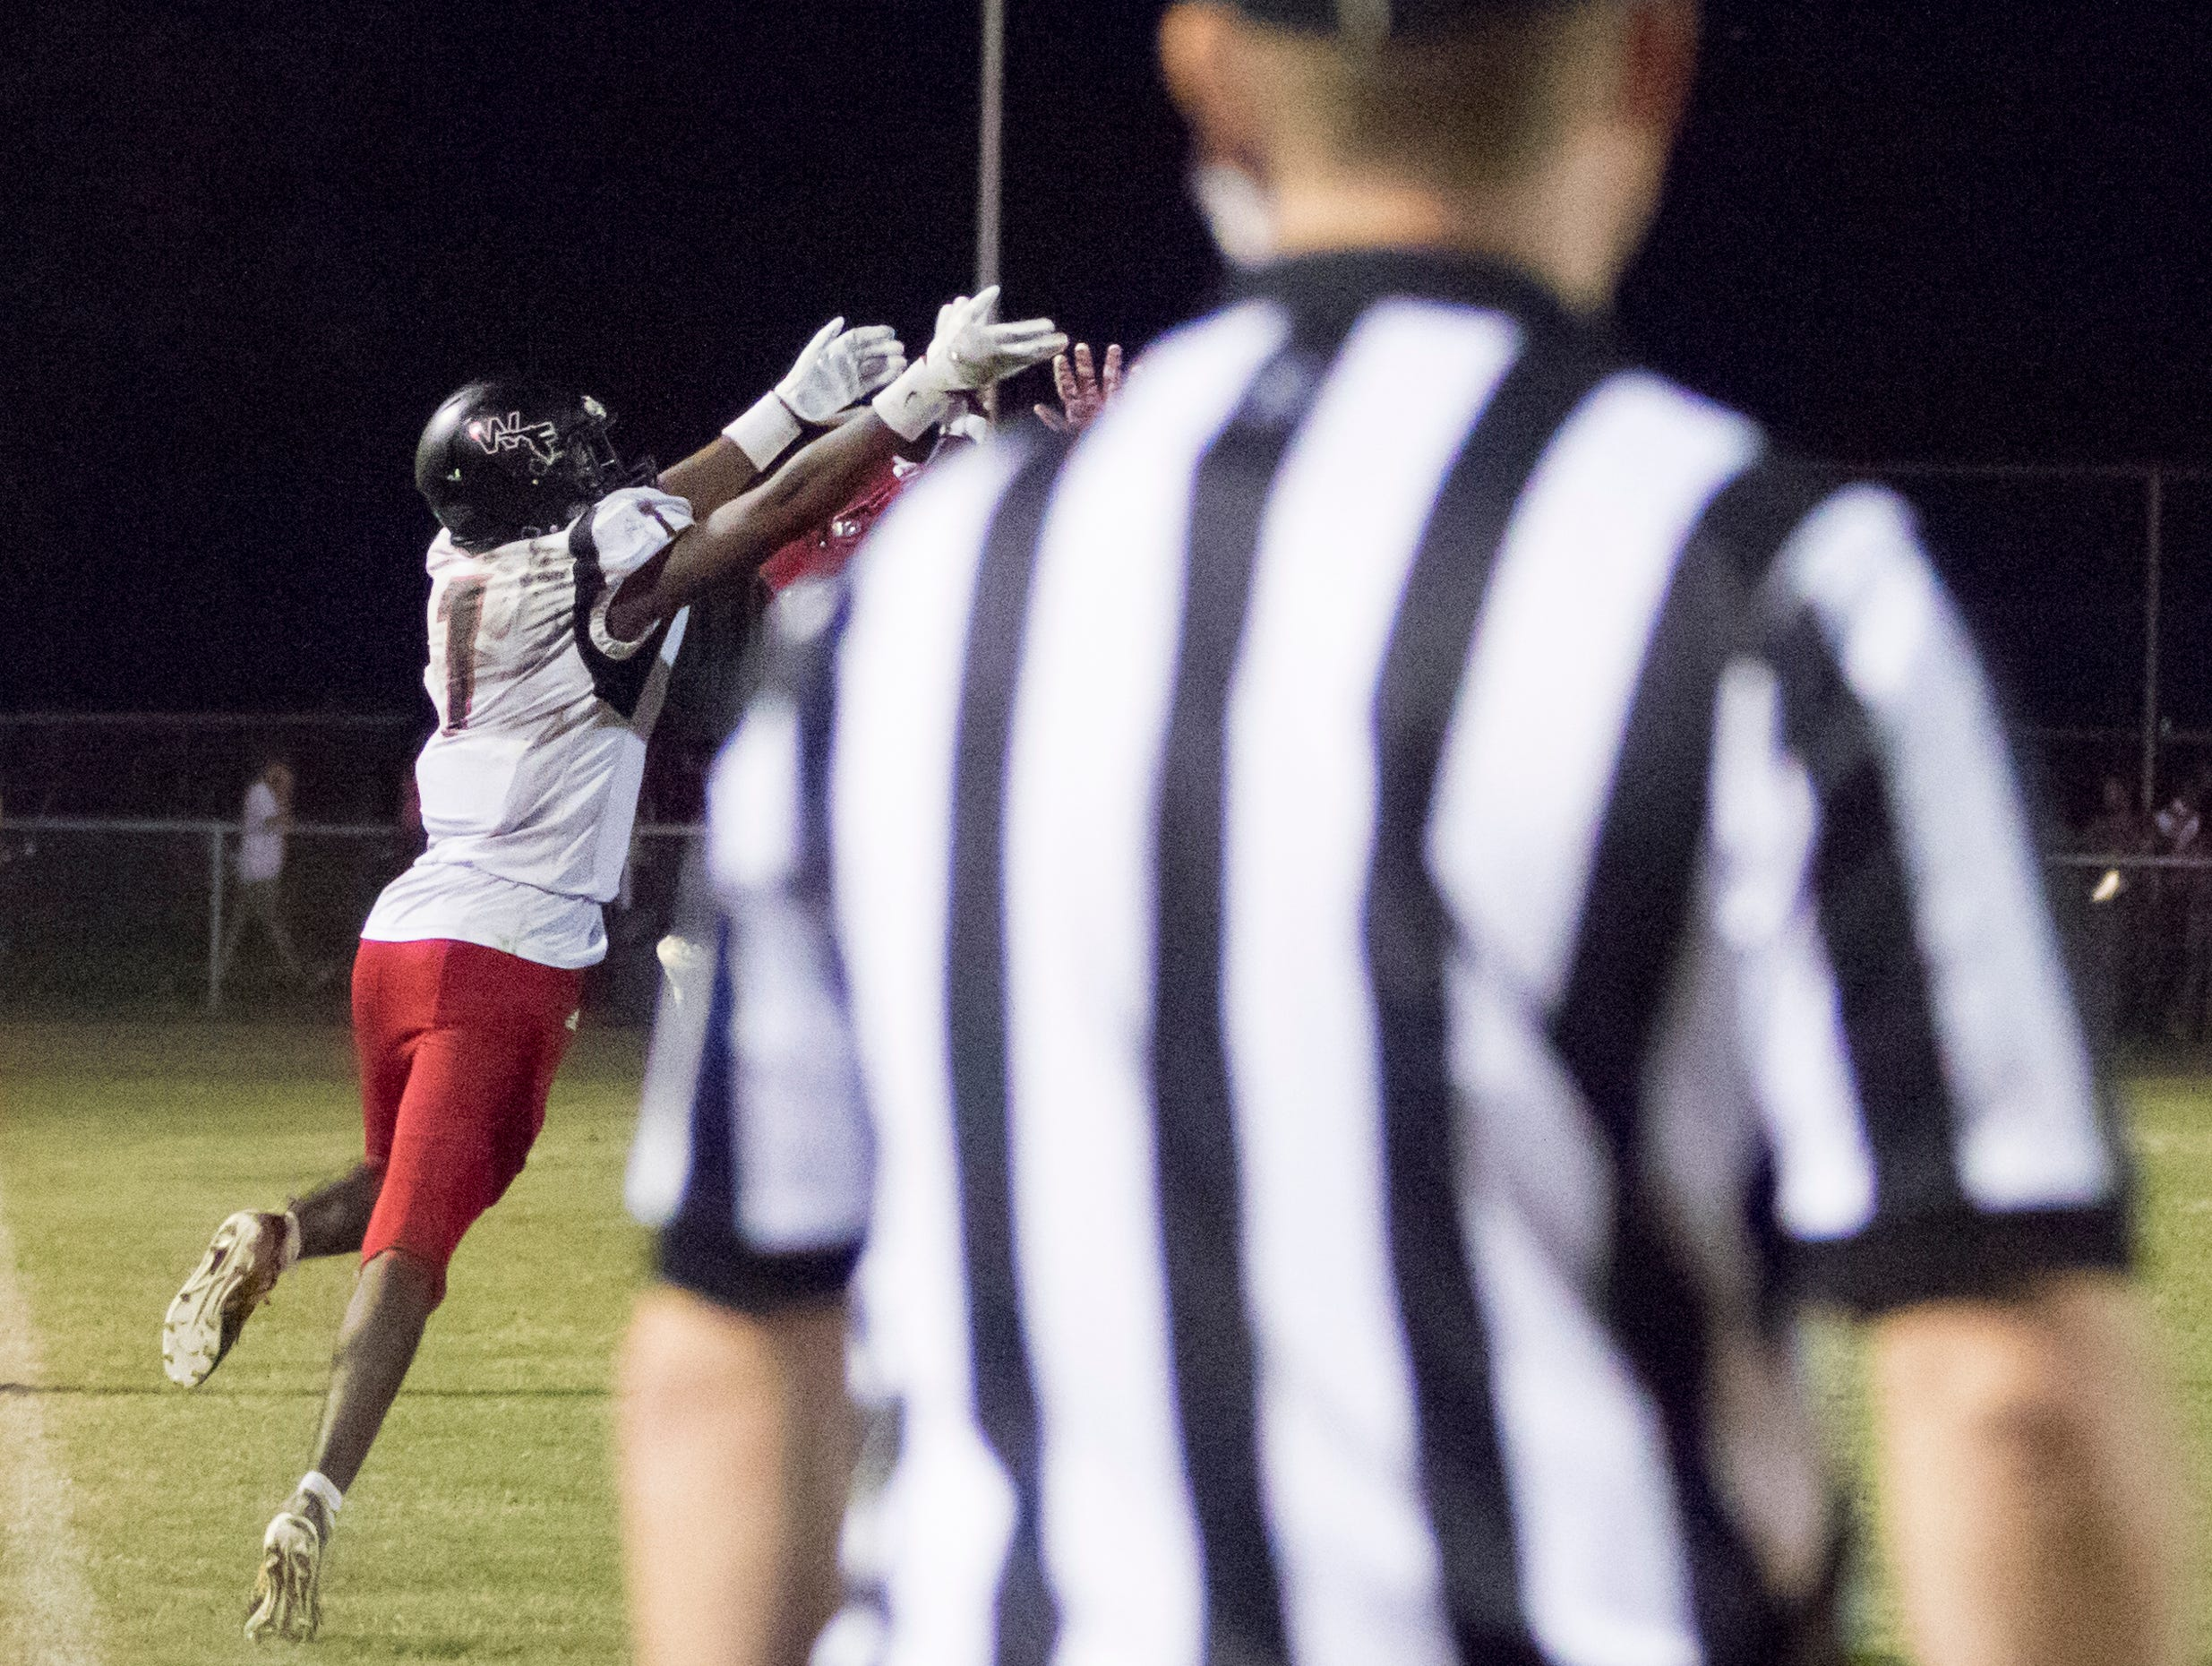 The Eagles intercept a Jaguars pass during the West Florida vs Pine Forest football game at Pine Forest High School in Pensacola on Friday, October 5, 2018.